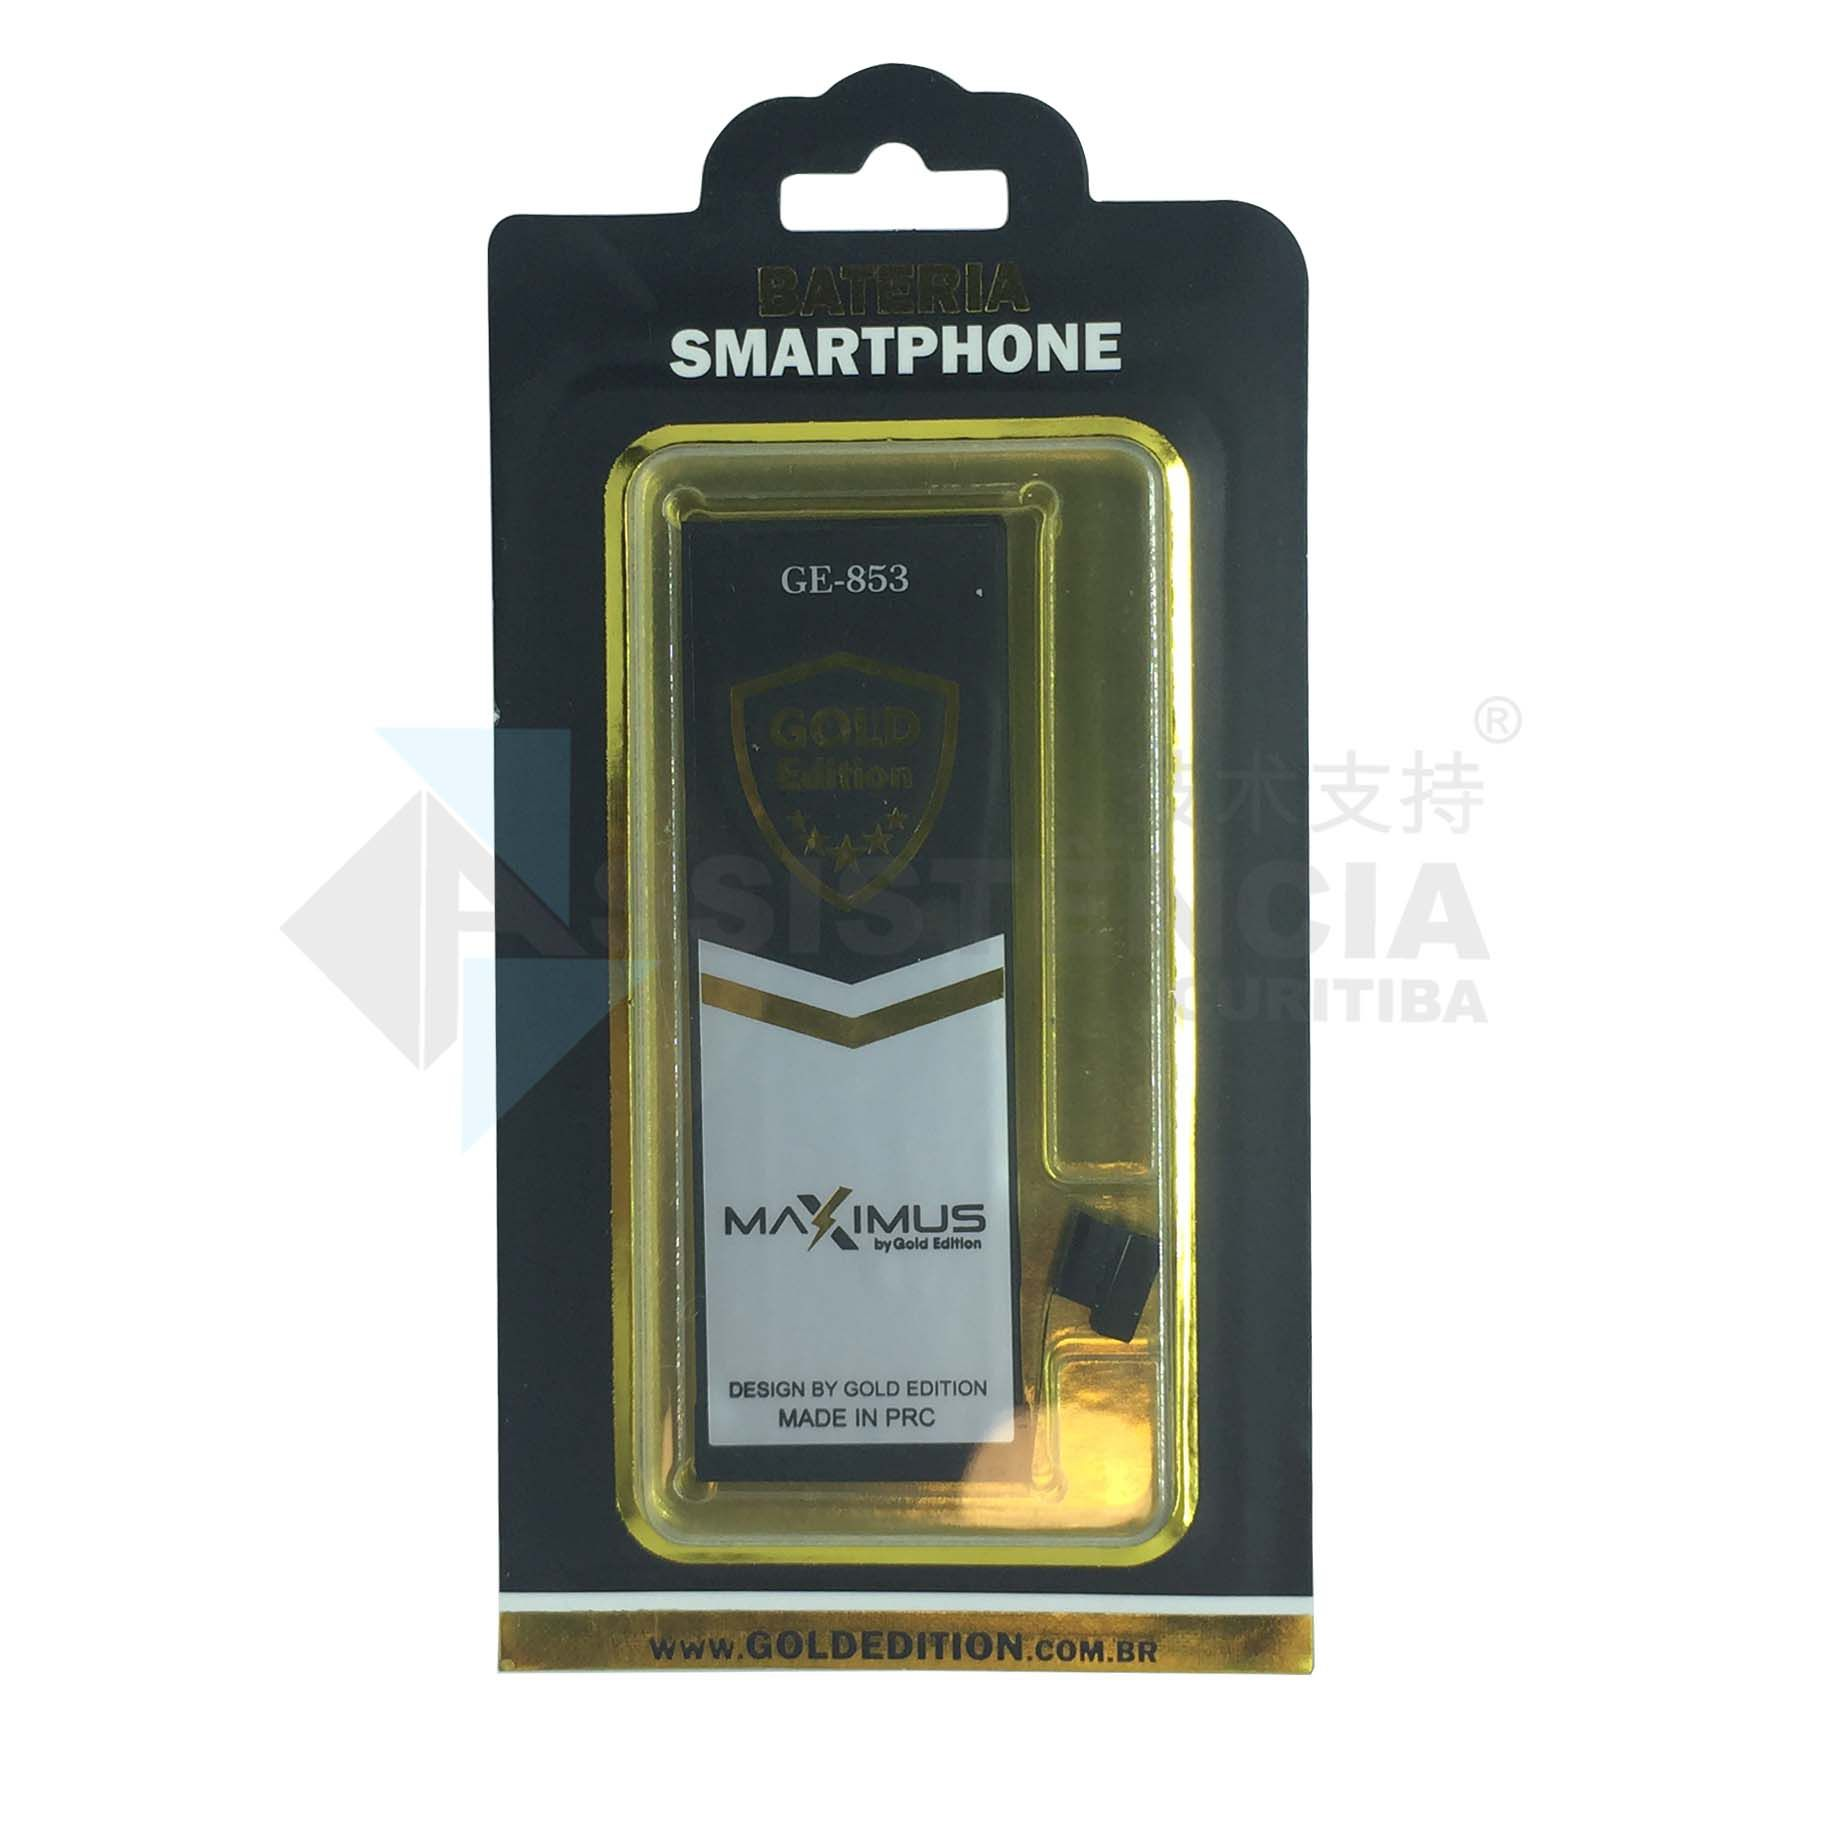 Bateria Gold Edition Apple Iphone 5G A1428 A1429 A1442